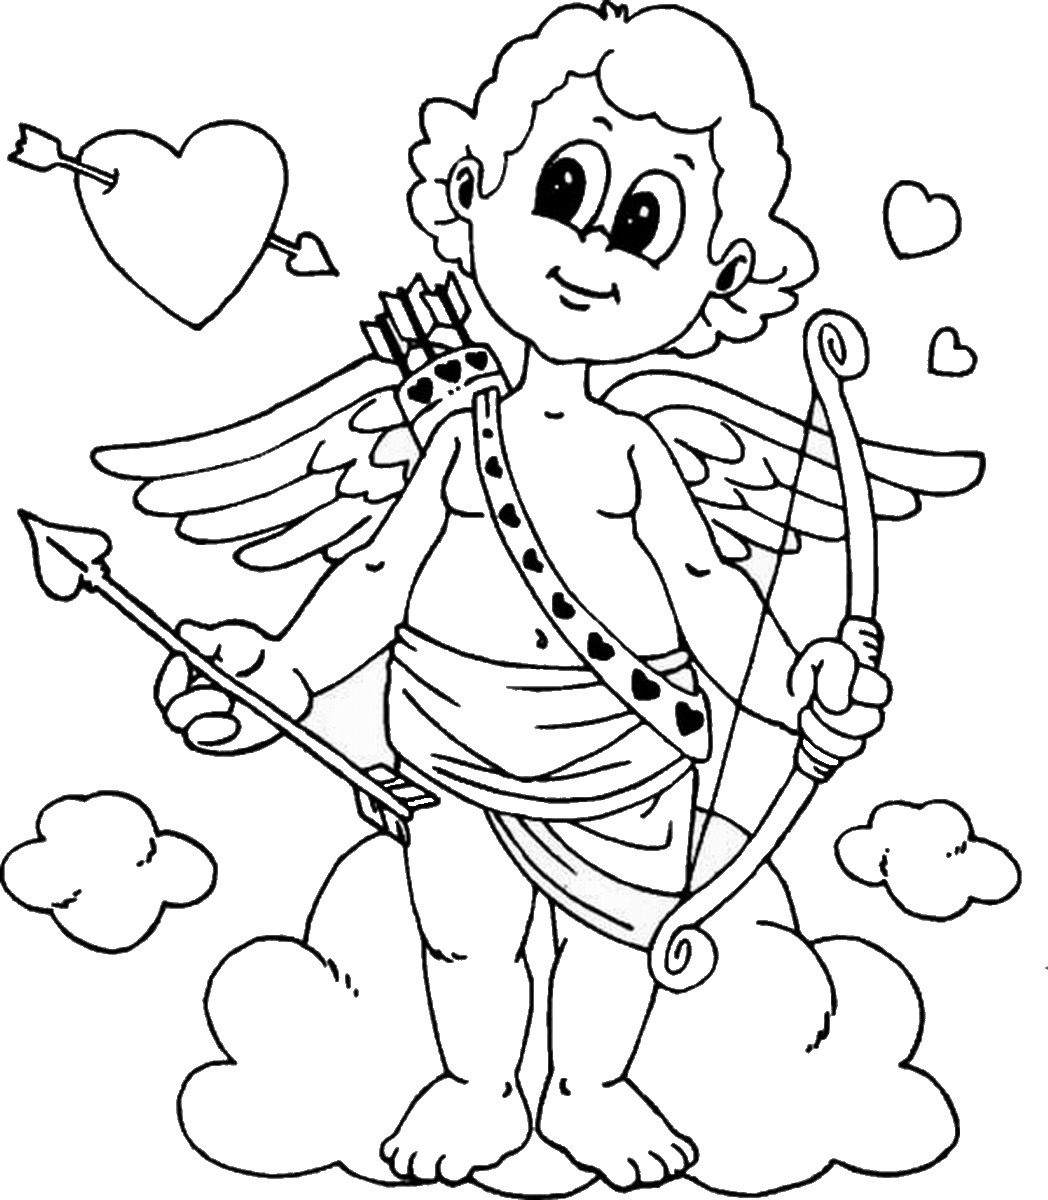 valentine printable coloring pages free printable valentine coloring pages for kids valentine coloring pages printable